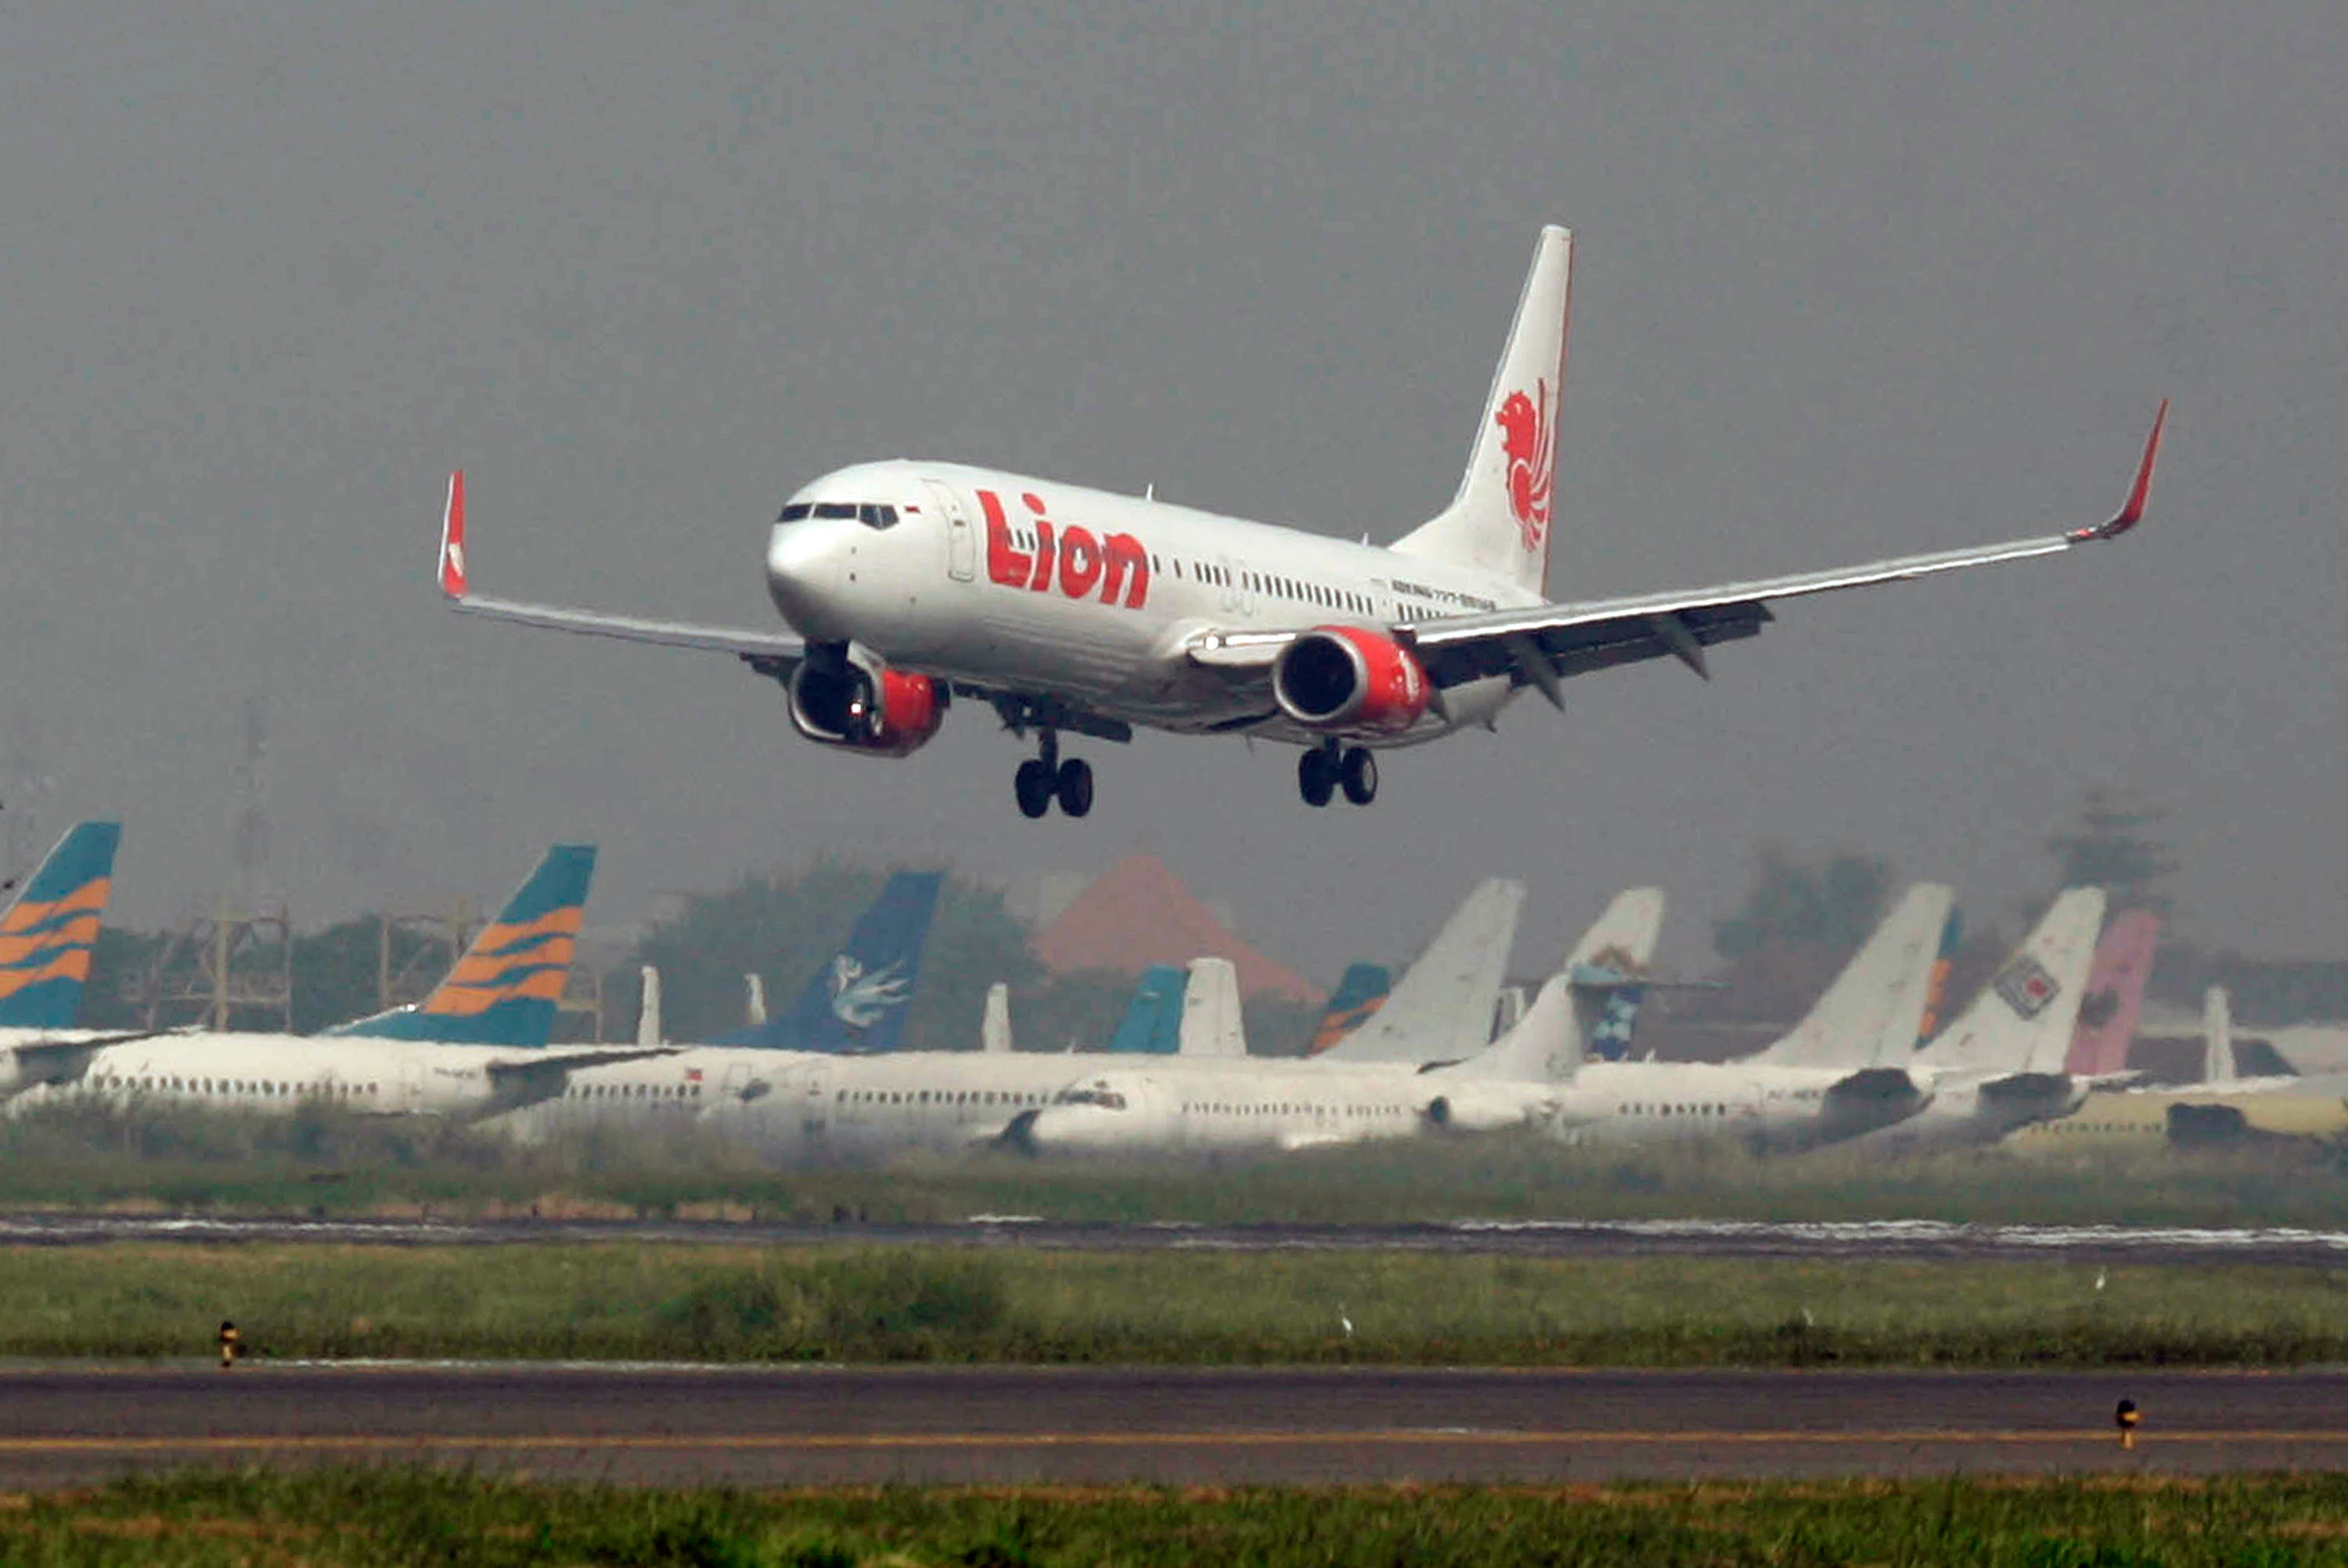 Welcome to the world! Woman gives birth to baby on Lion Air flight